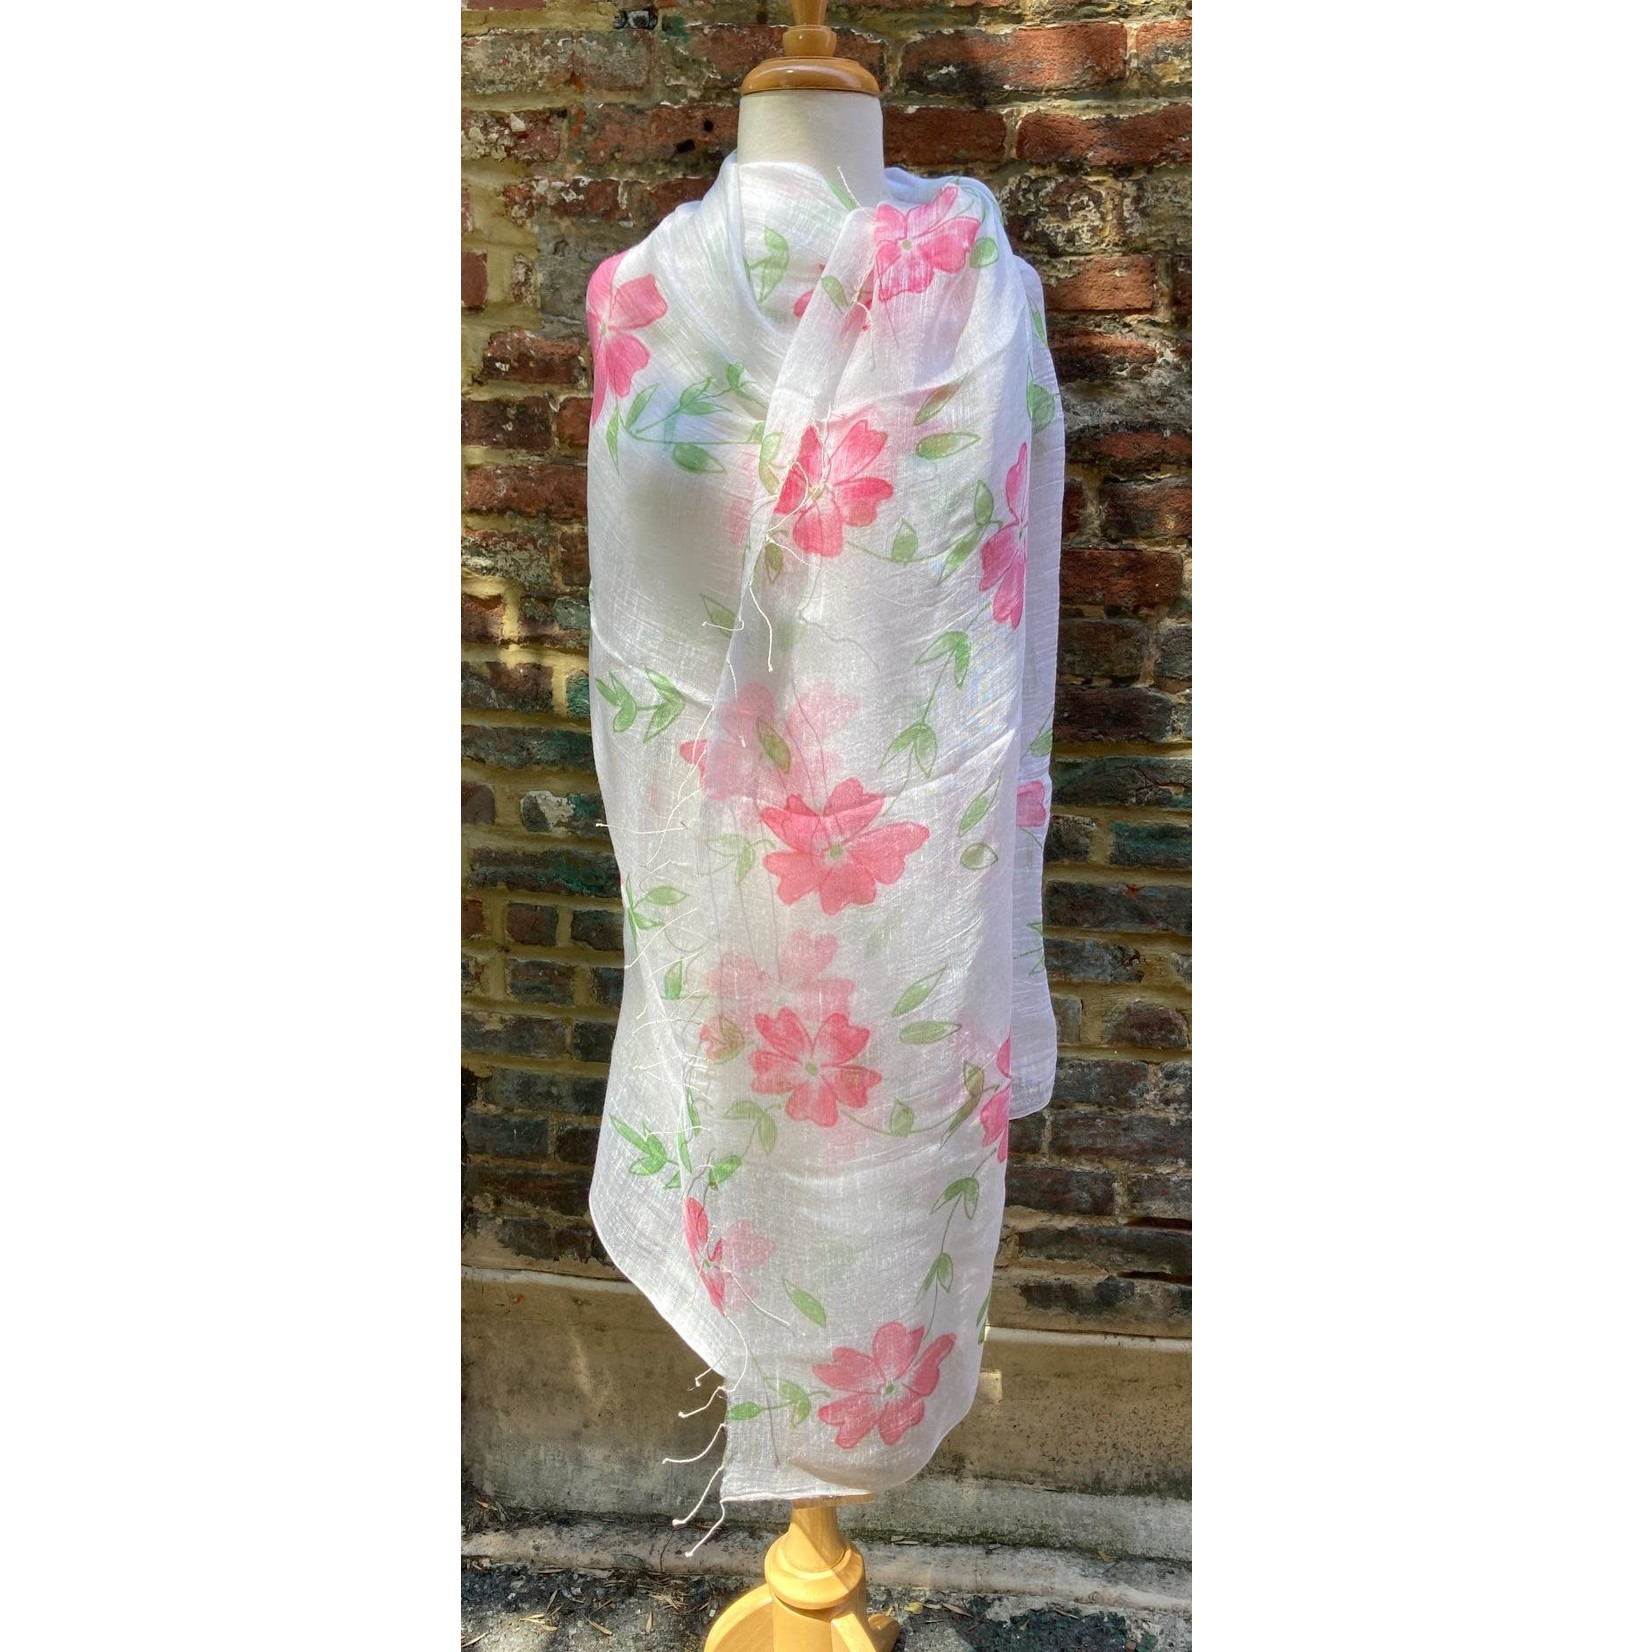 100% Silk Sheer White Scarf Pink Watercolor Flowers